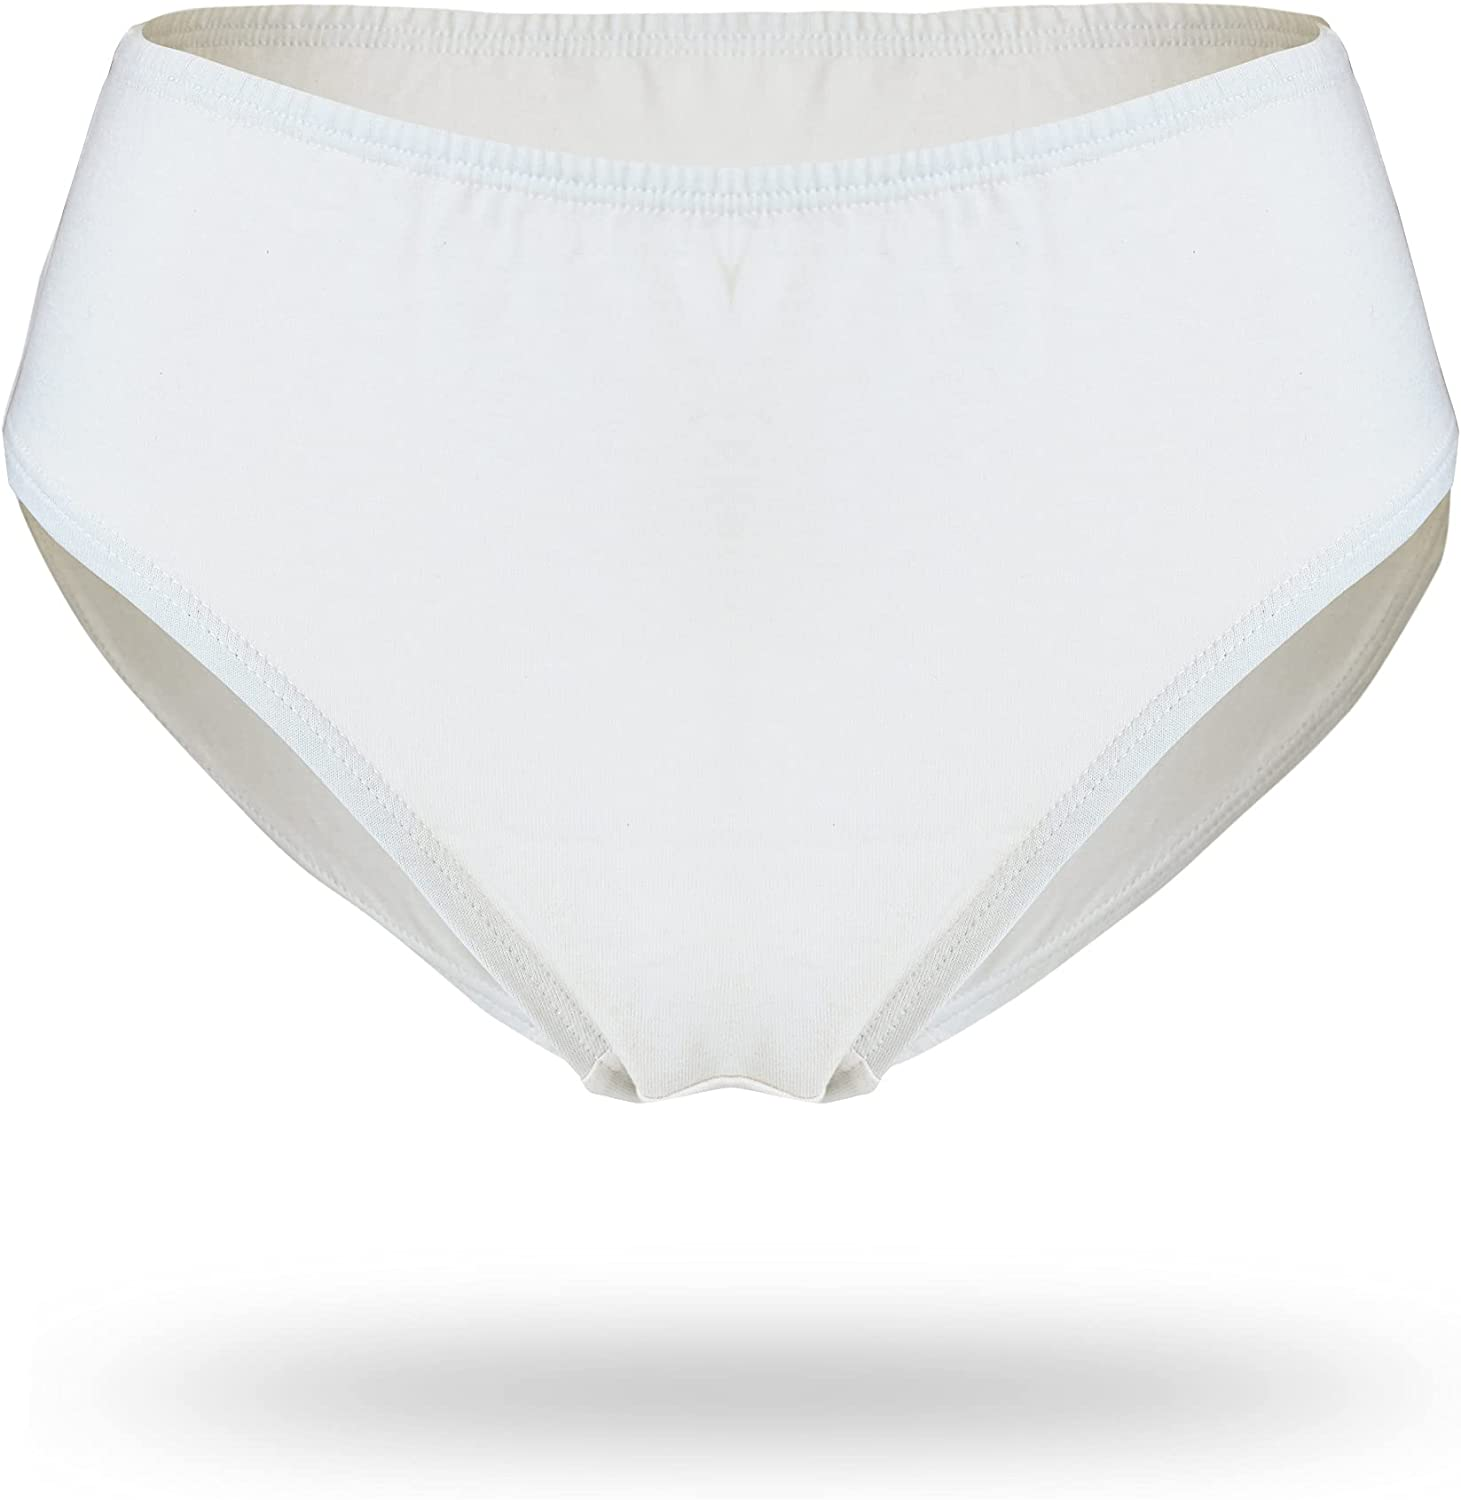 Cottonique Girl's Hypoallergenic Panty Made from 100% Organic Cotton (3/Pack)